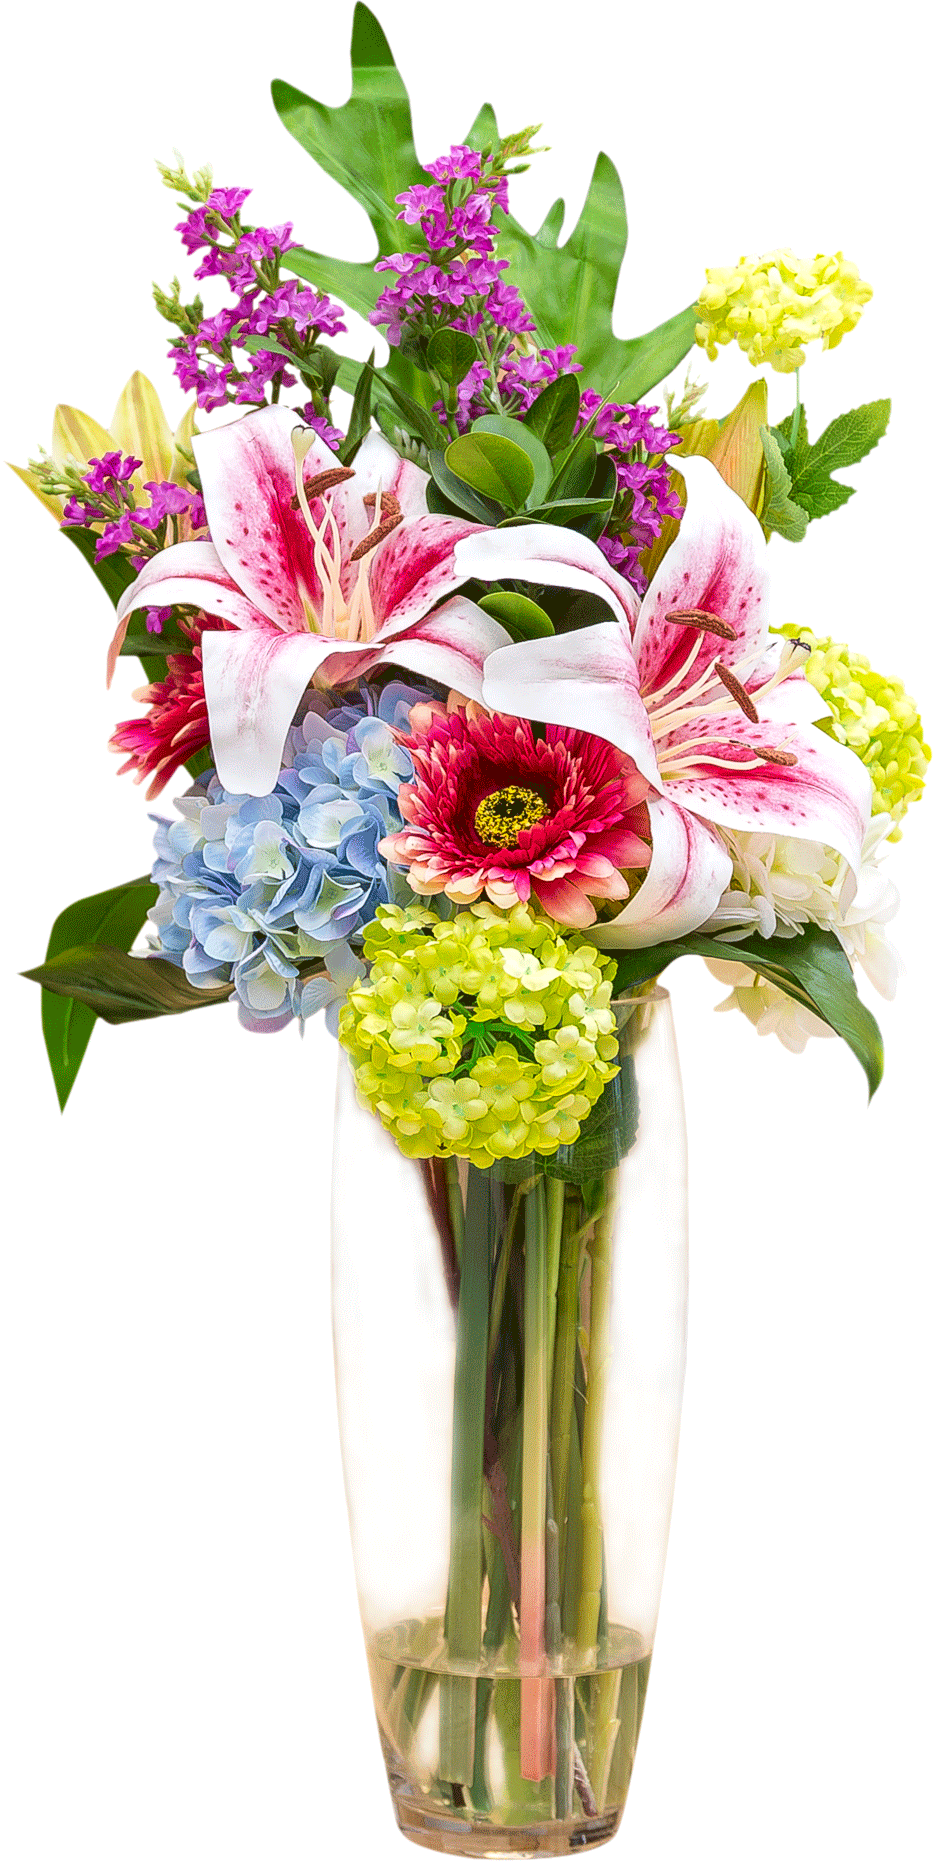 Why Buy Artificial Flowers From Global Blooming